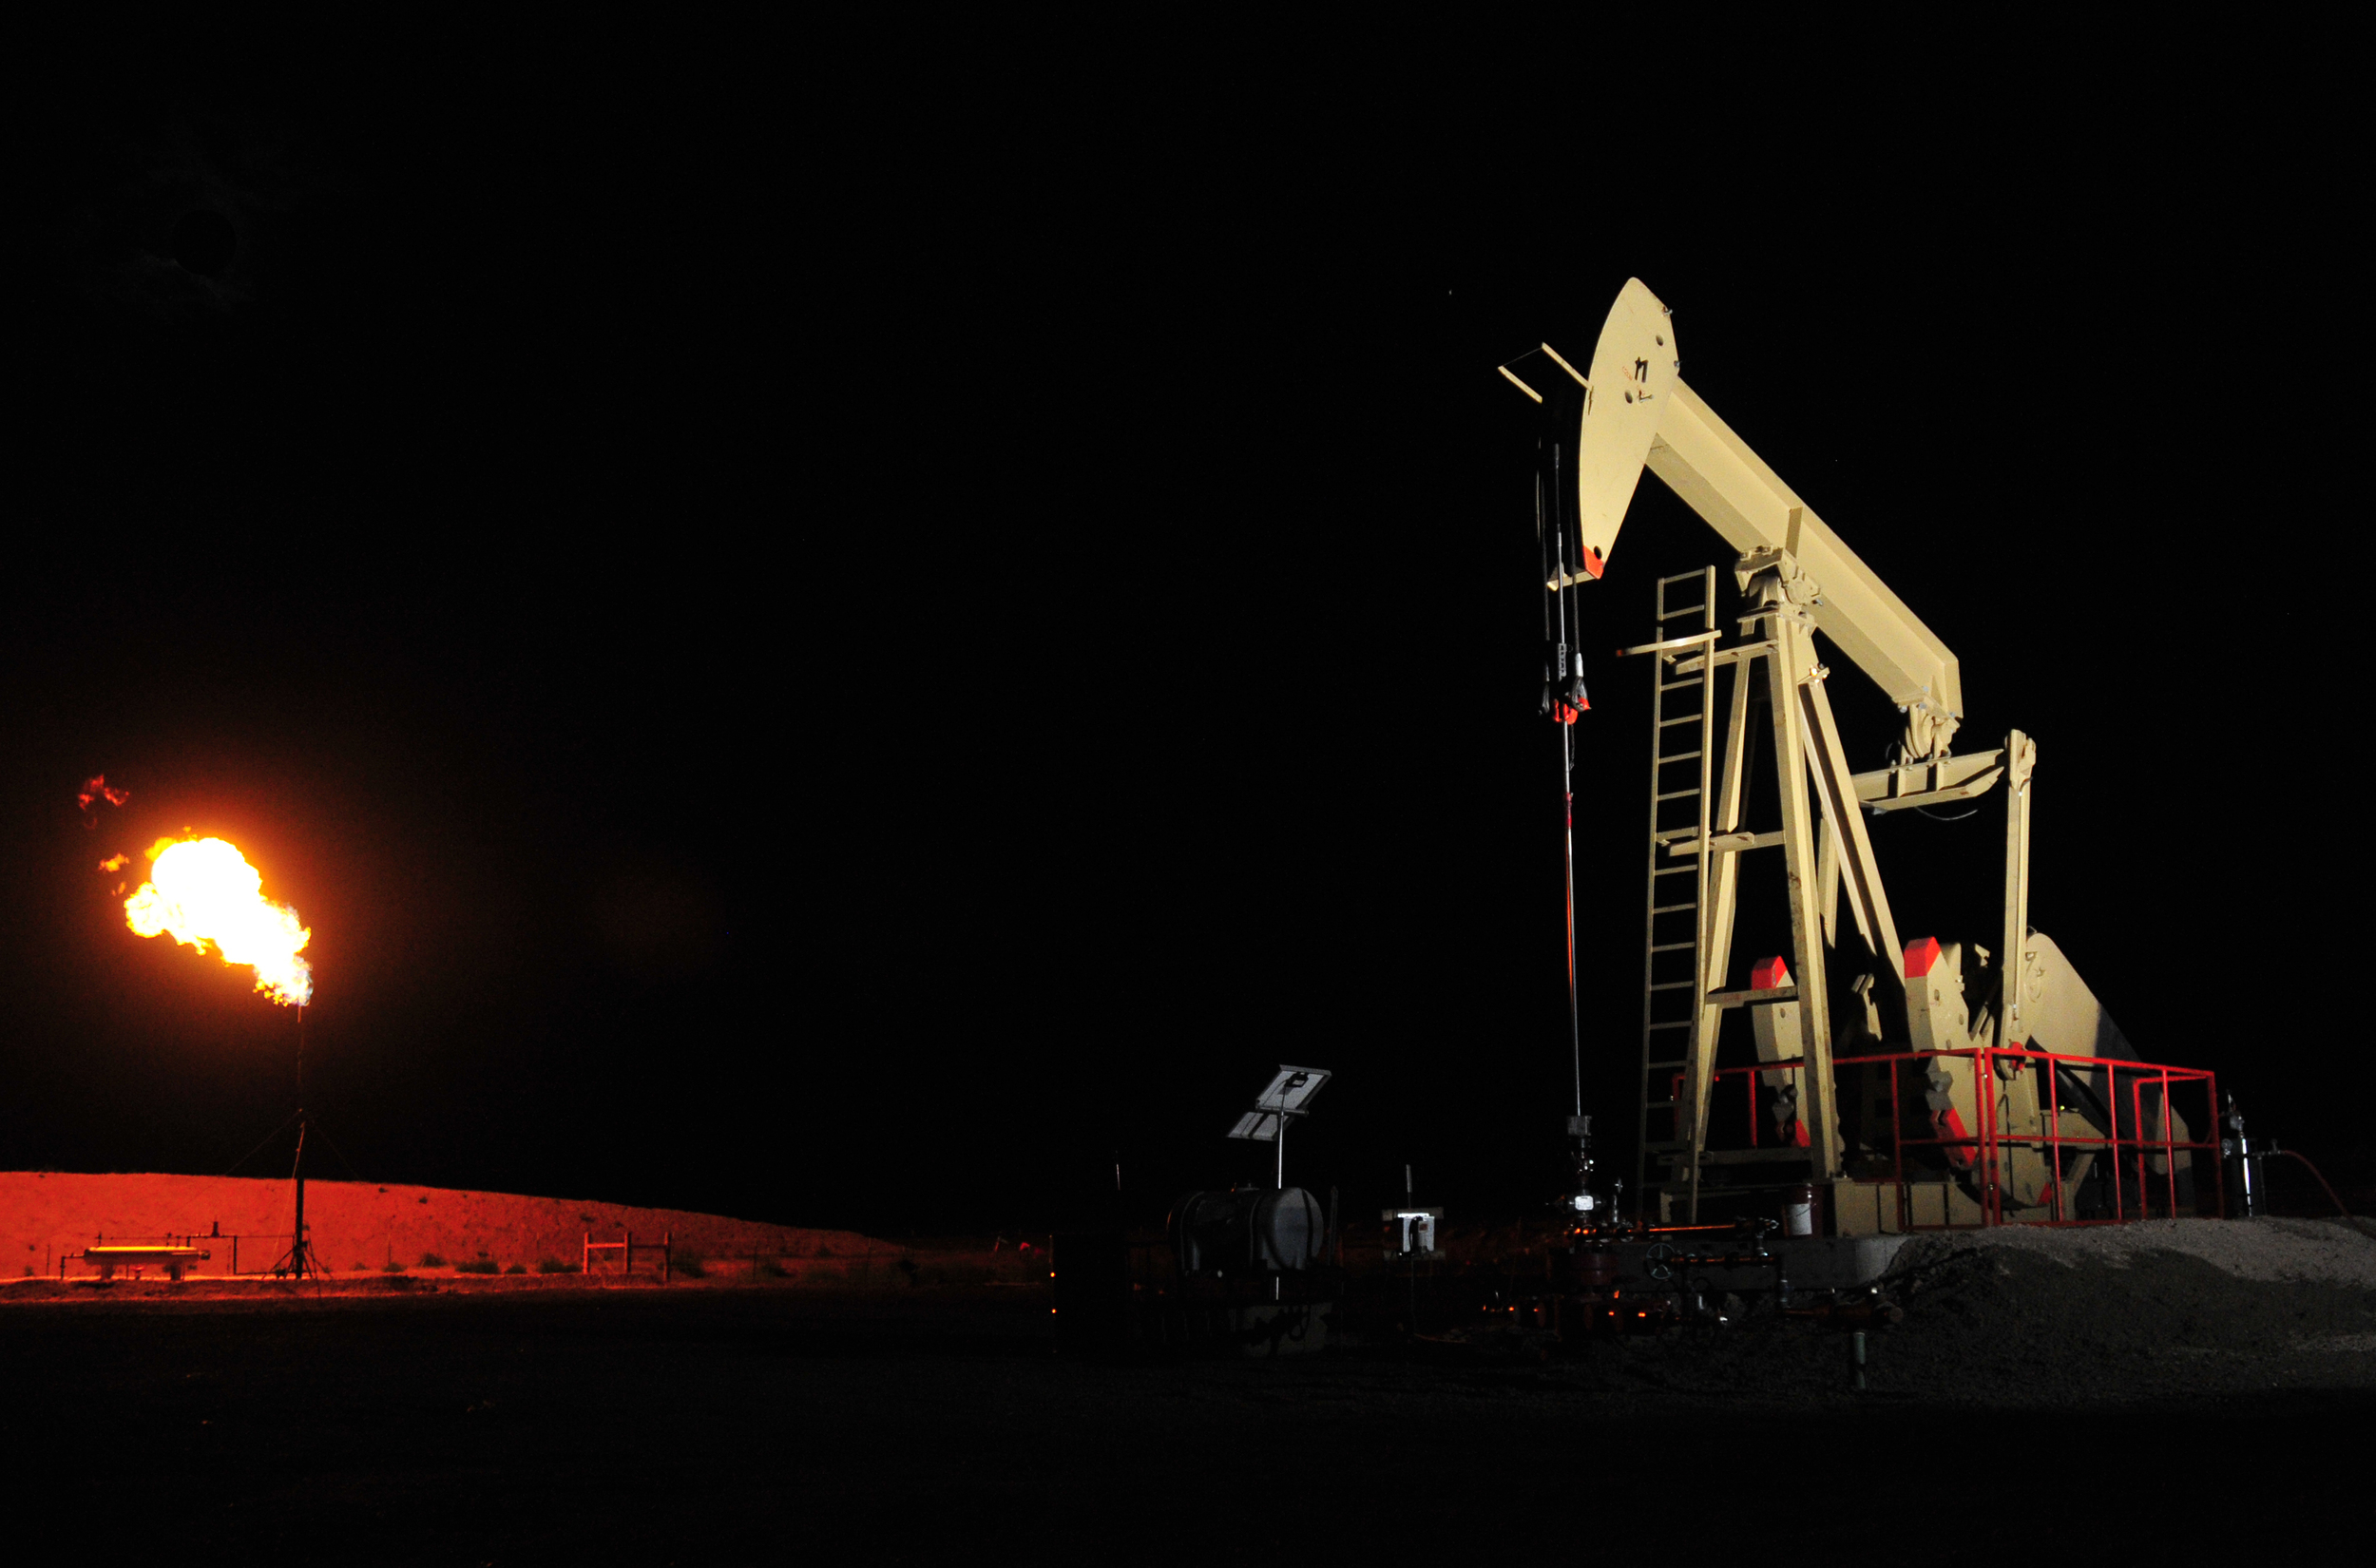 An oil rig operates at night near Pawnee Buttes Colorado